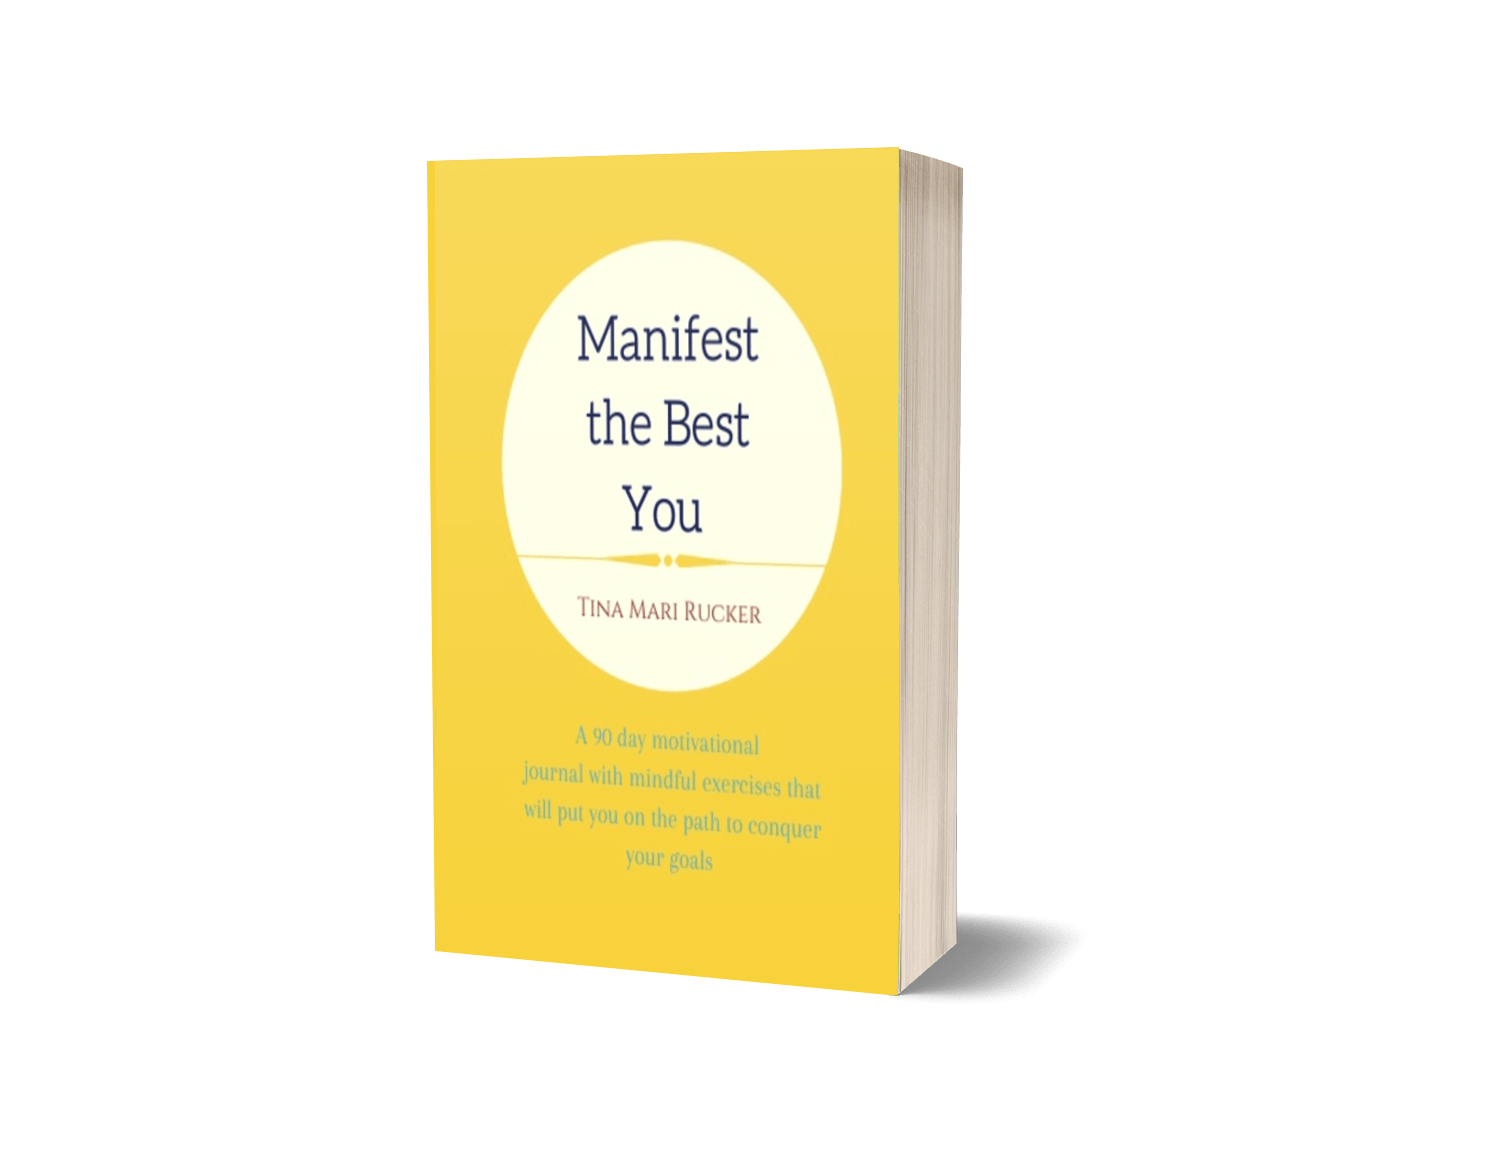 Manifest the Best You